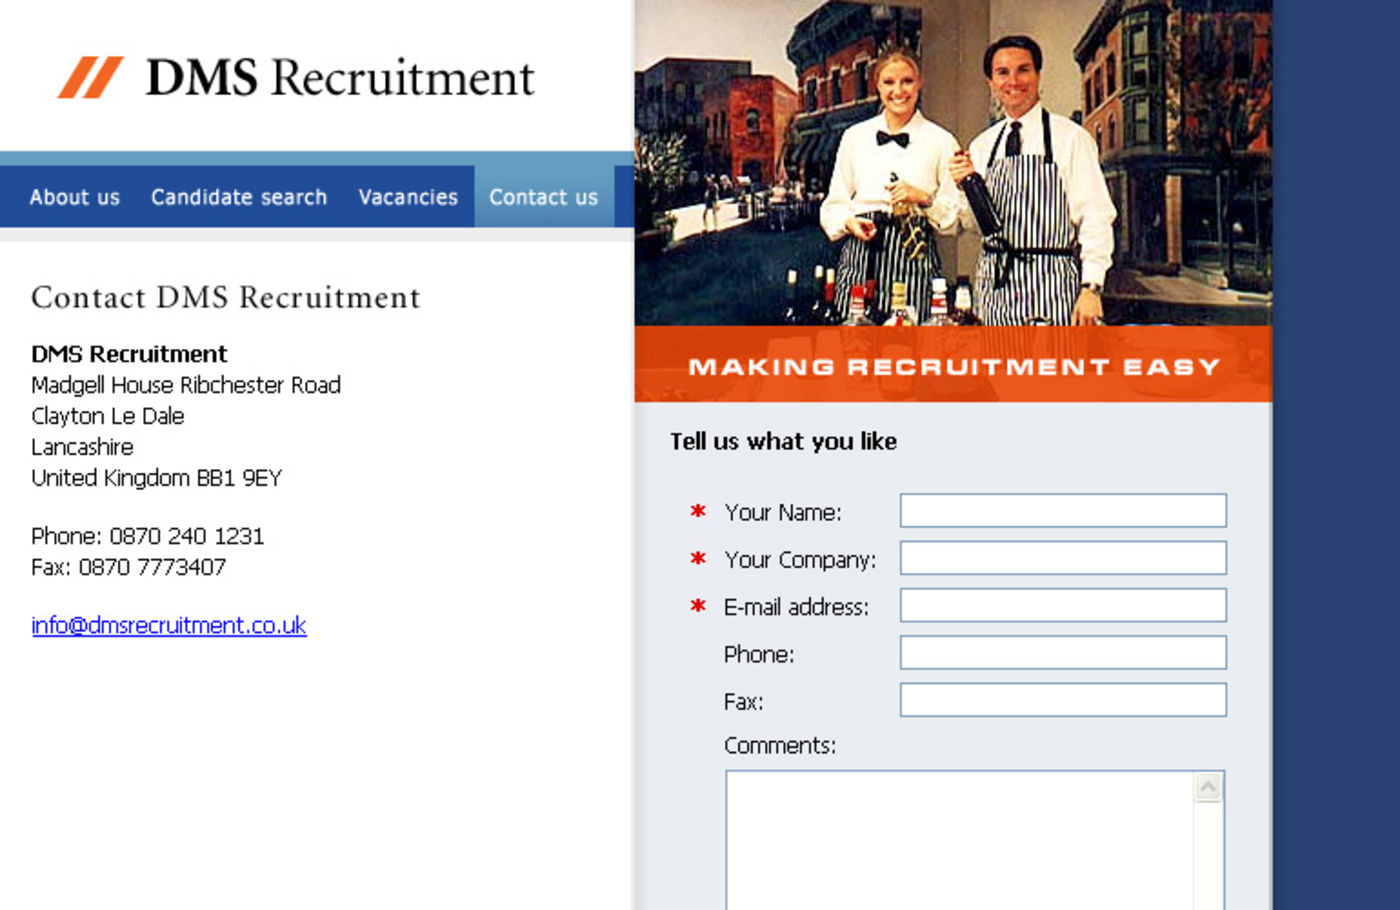 DMS Recruitment Contact us